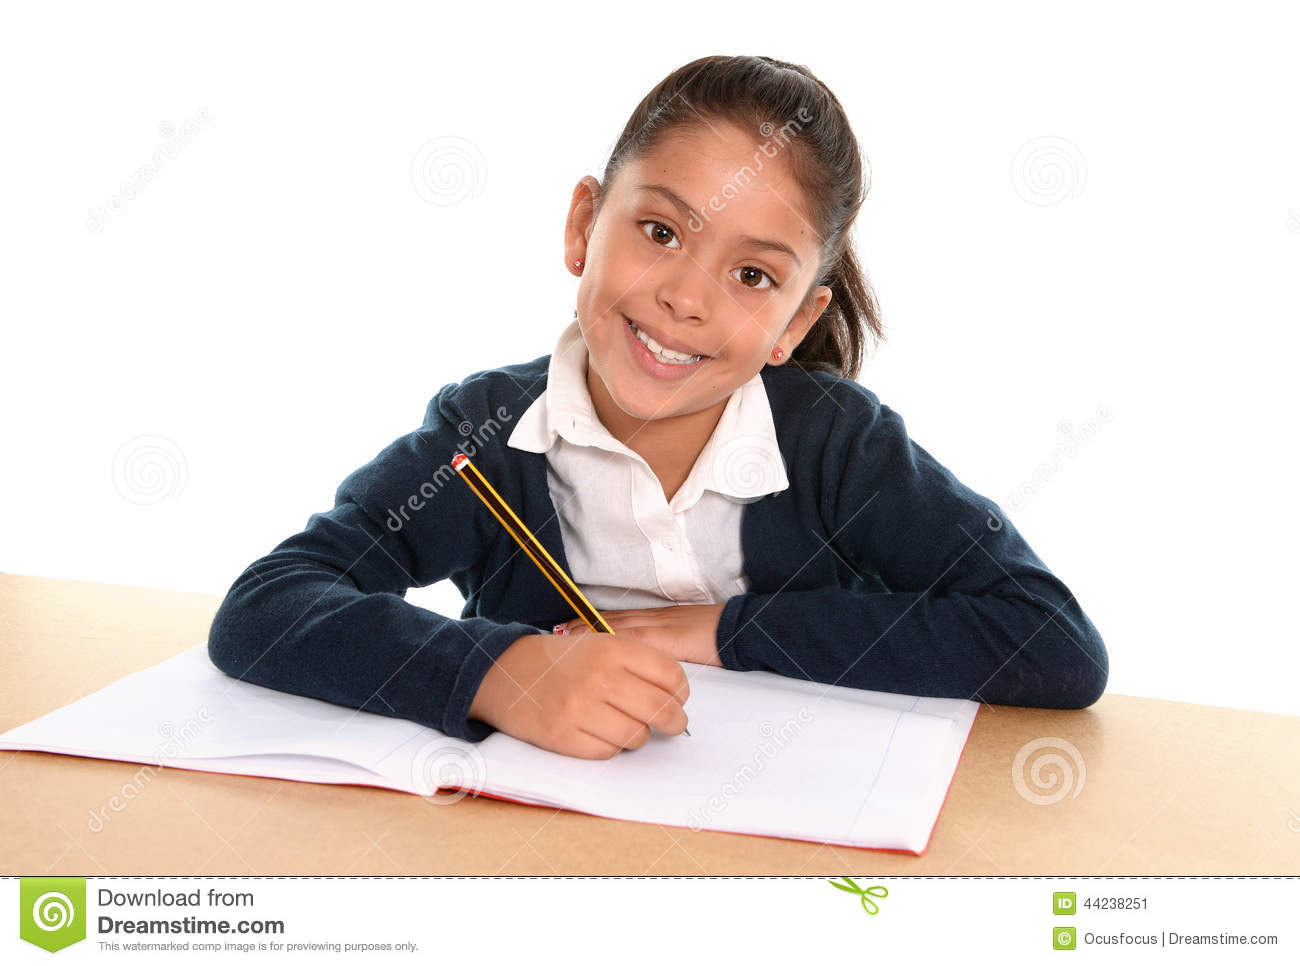 Education of girl child is importance essay writer